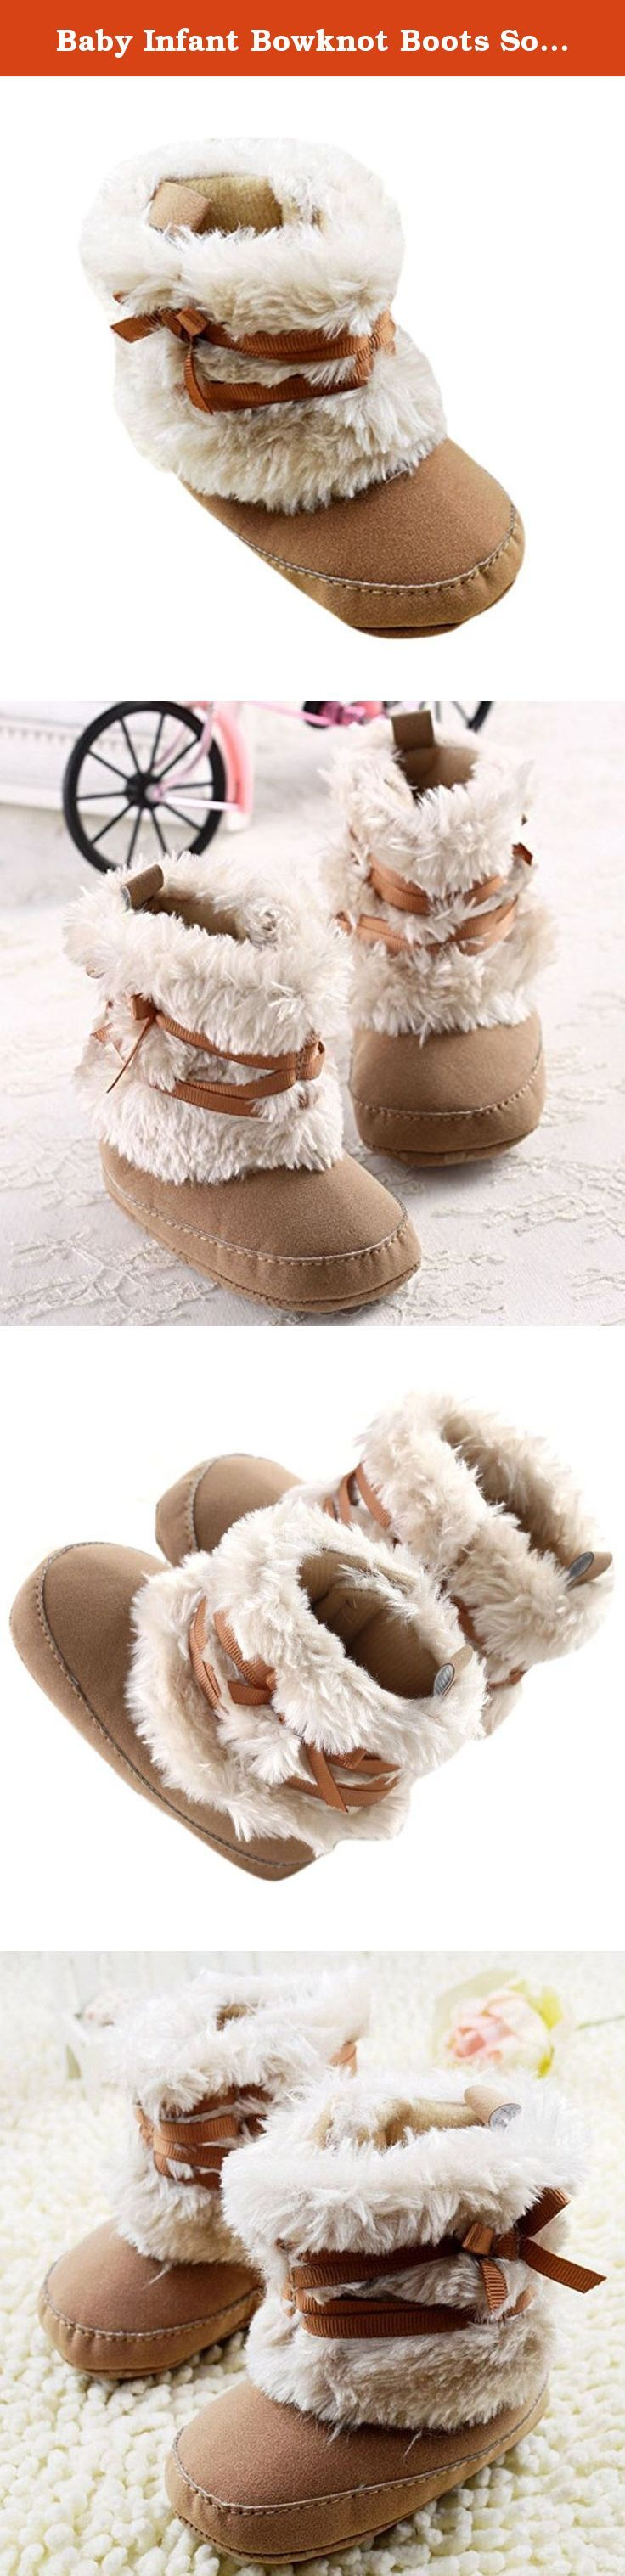 """Baby Infant Bowknot Boots Soft Crib Shoes Toddler Warm Fleece Prewalker 0-18M (Medium(6-12 Months), Khaki). Size Small: Sole Length 4.72"""", Sole Width 2.17"""", Height 3.94"""" Size Medium: Sole Length 5"""", Sole Width 2.36"""", Height 4.33"""" Size Large: Sole Length 5.31"""", Sole Width 2.56"""", Height 4.72"""" Package included: 1 x boots(without box) Attention Please: About Size: Item Measure by hand, it could be 2-3cm different. Asian size is smaller 1 or 2size than US/EU Size, please check the size detail..."""